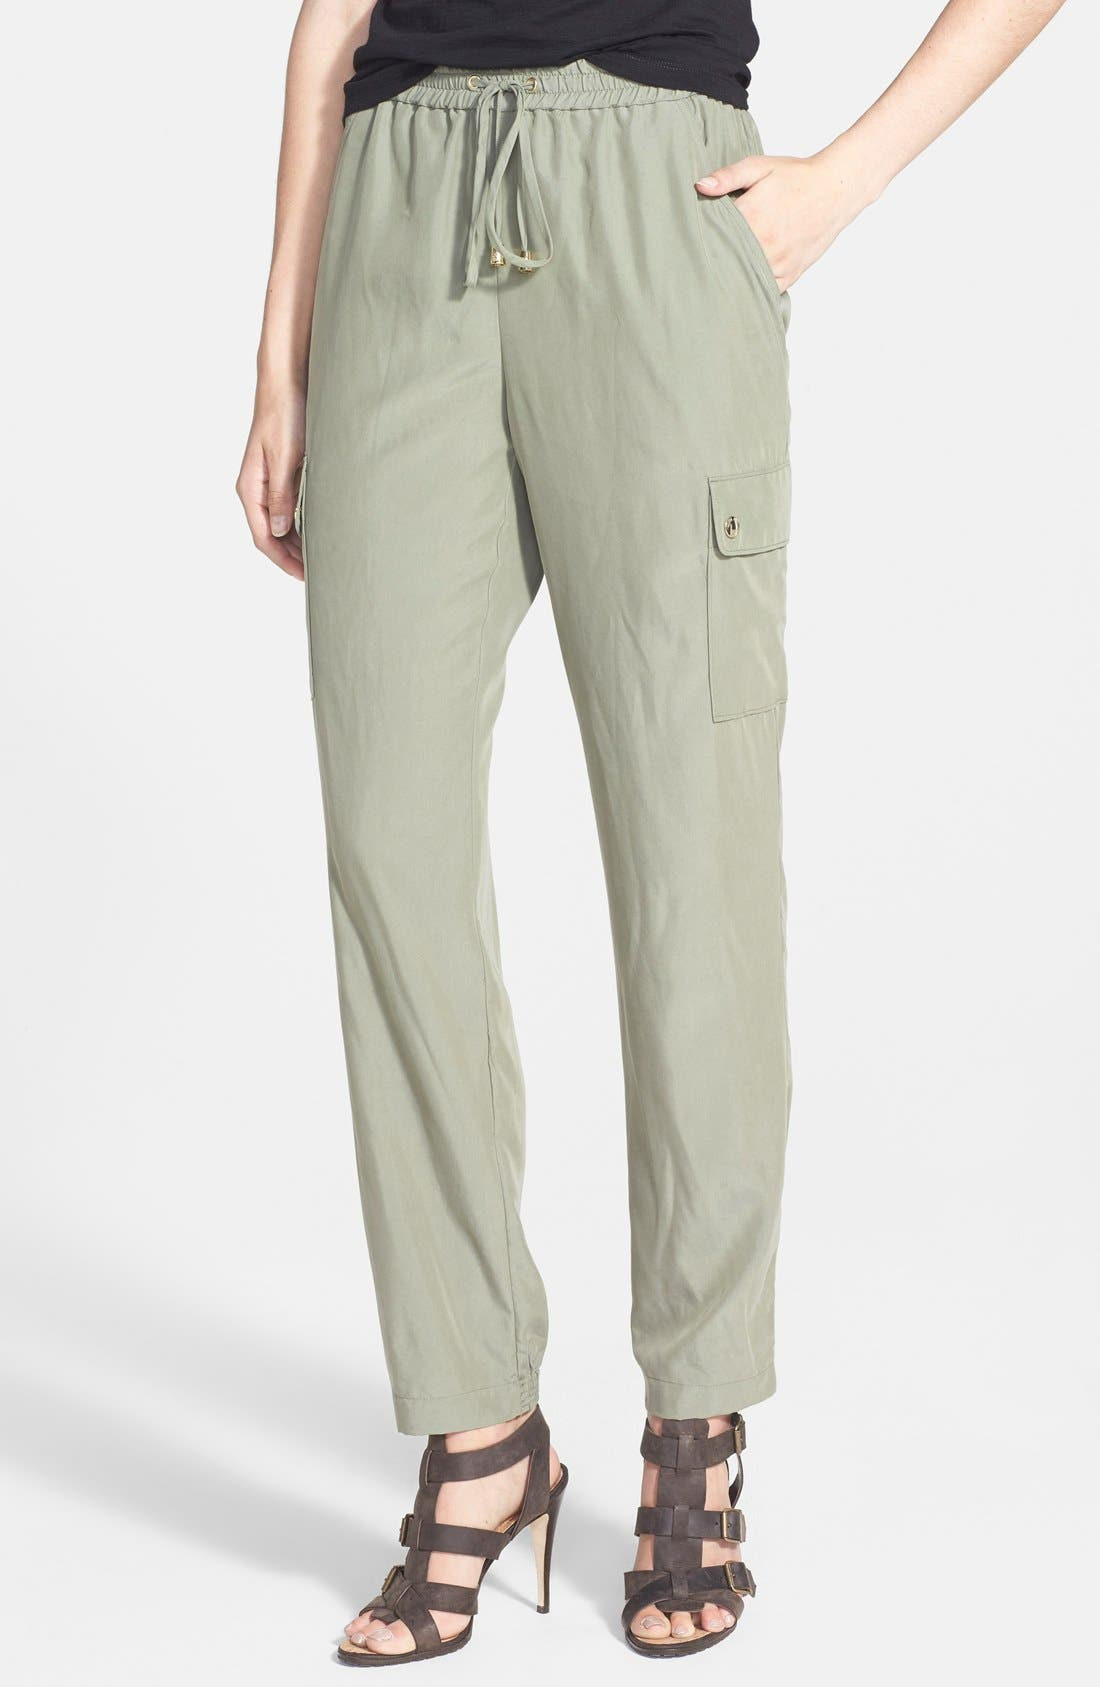 Main Image - Two by Vince Camuto Cargo Pocket Track Pants